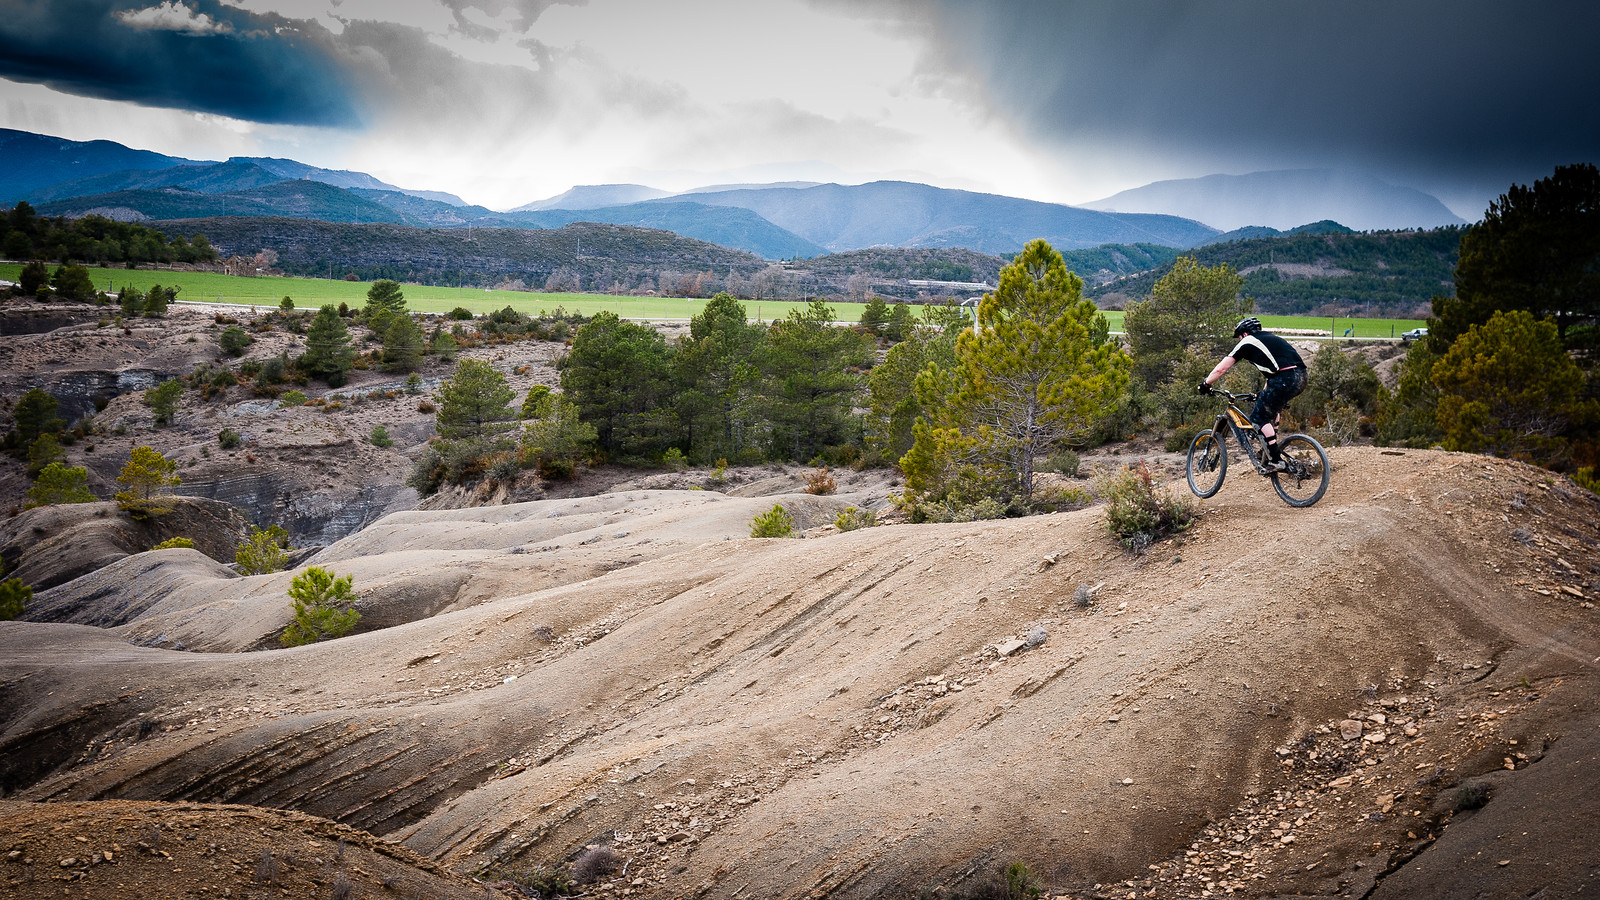 Pyrenees Mountain Biking - BasqueMTB - Mountain Biking Pictures - Vital MTB